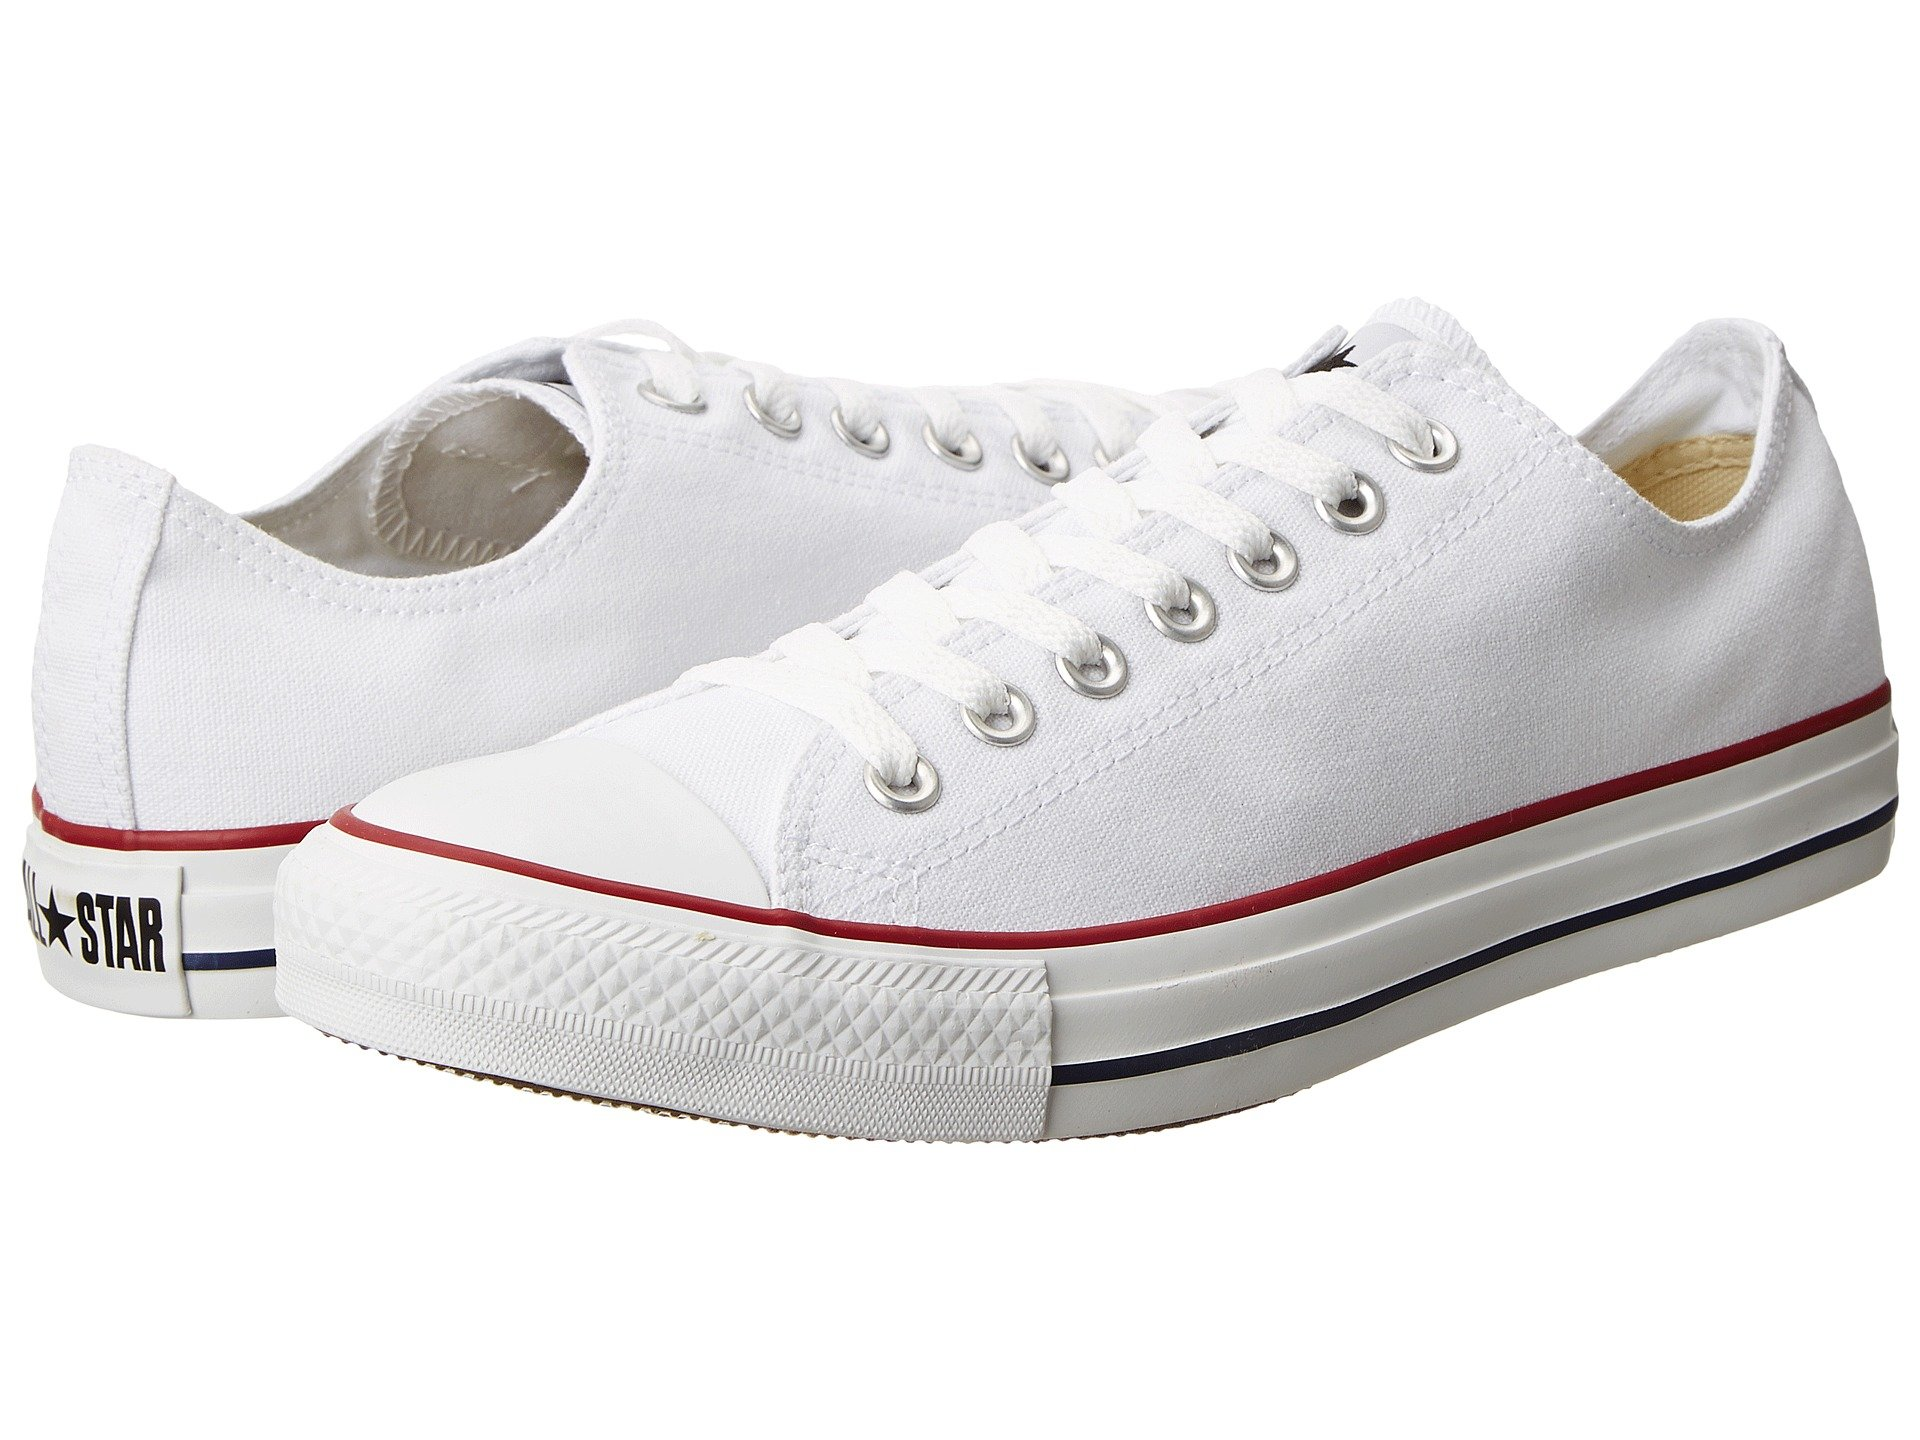 Converse Men's All Star Chuck Taylor M7652 Optical White M7652 Canvas Lo Ox - MEN 5 M US / WOMEN 7 M US by Converse